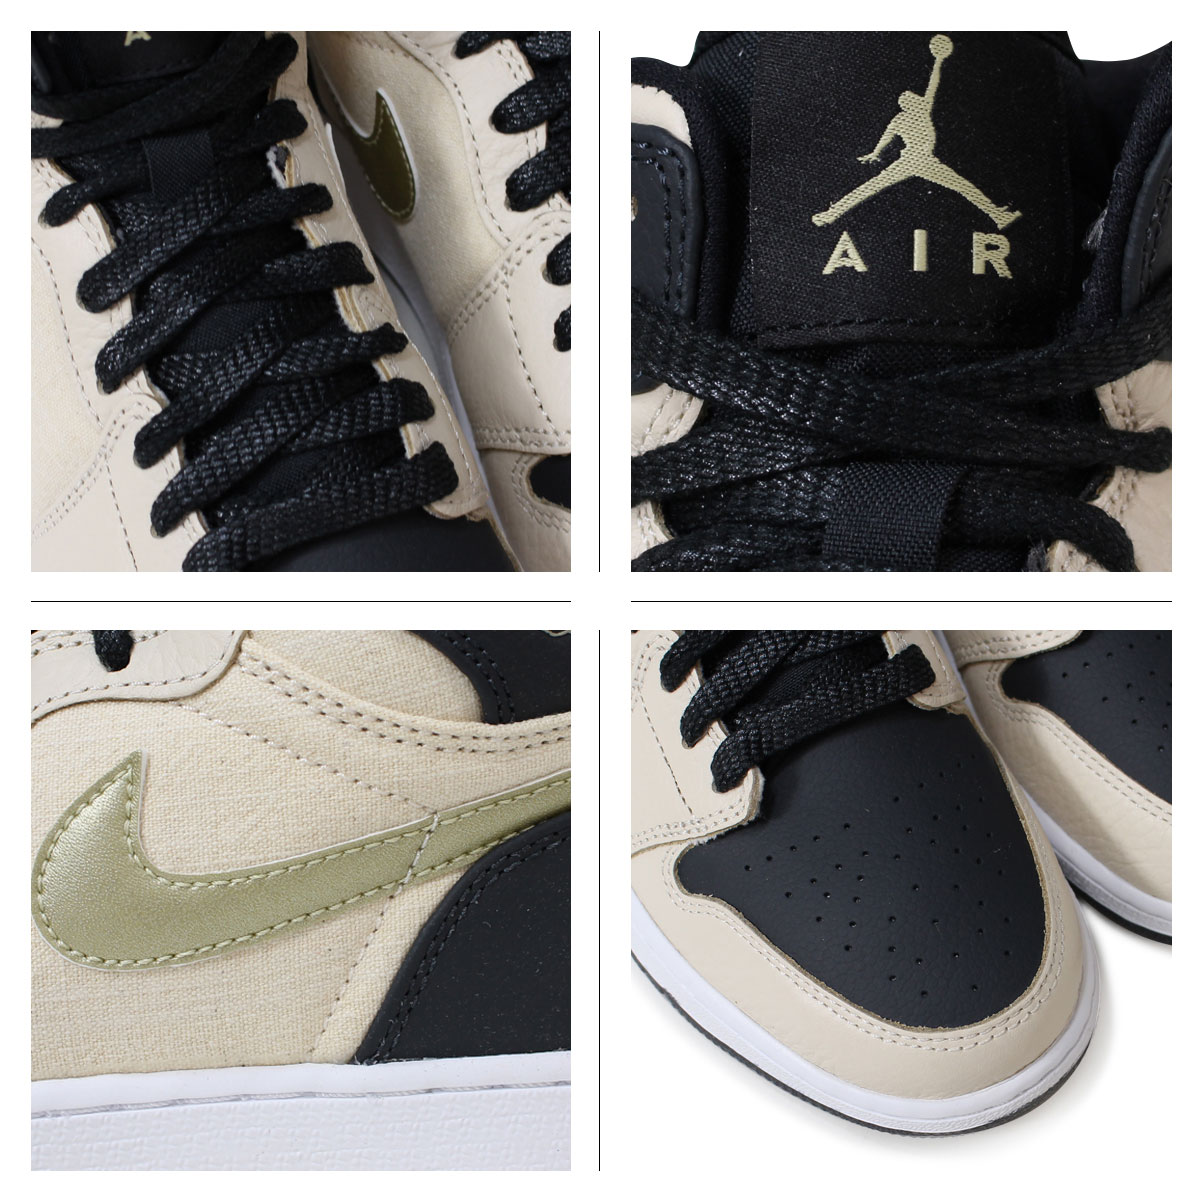 78af0920 The origin of the name comes from the Greece myths of one Jeff Johnson saw  in the dream, victory goddess Nike (Nike).